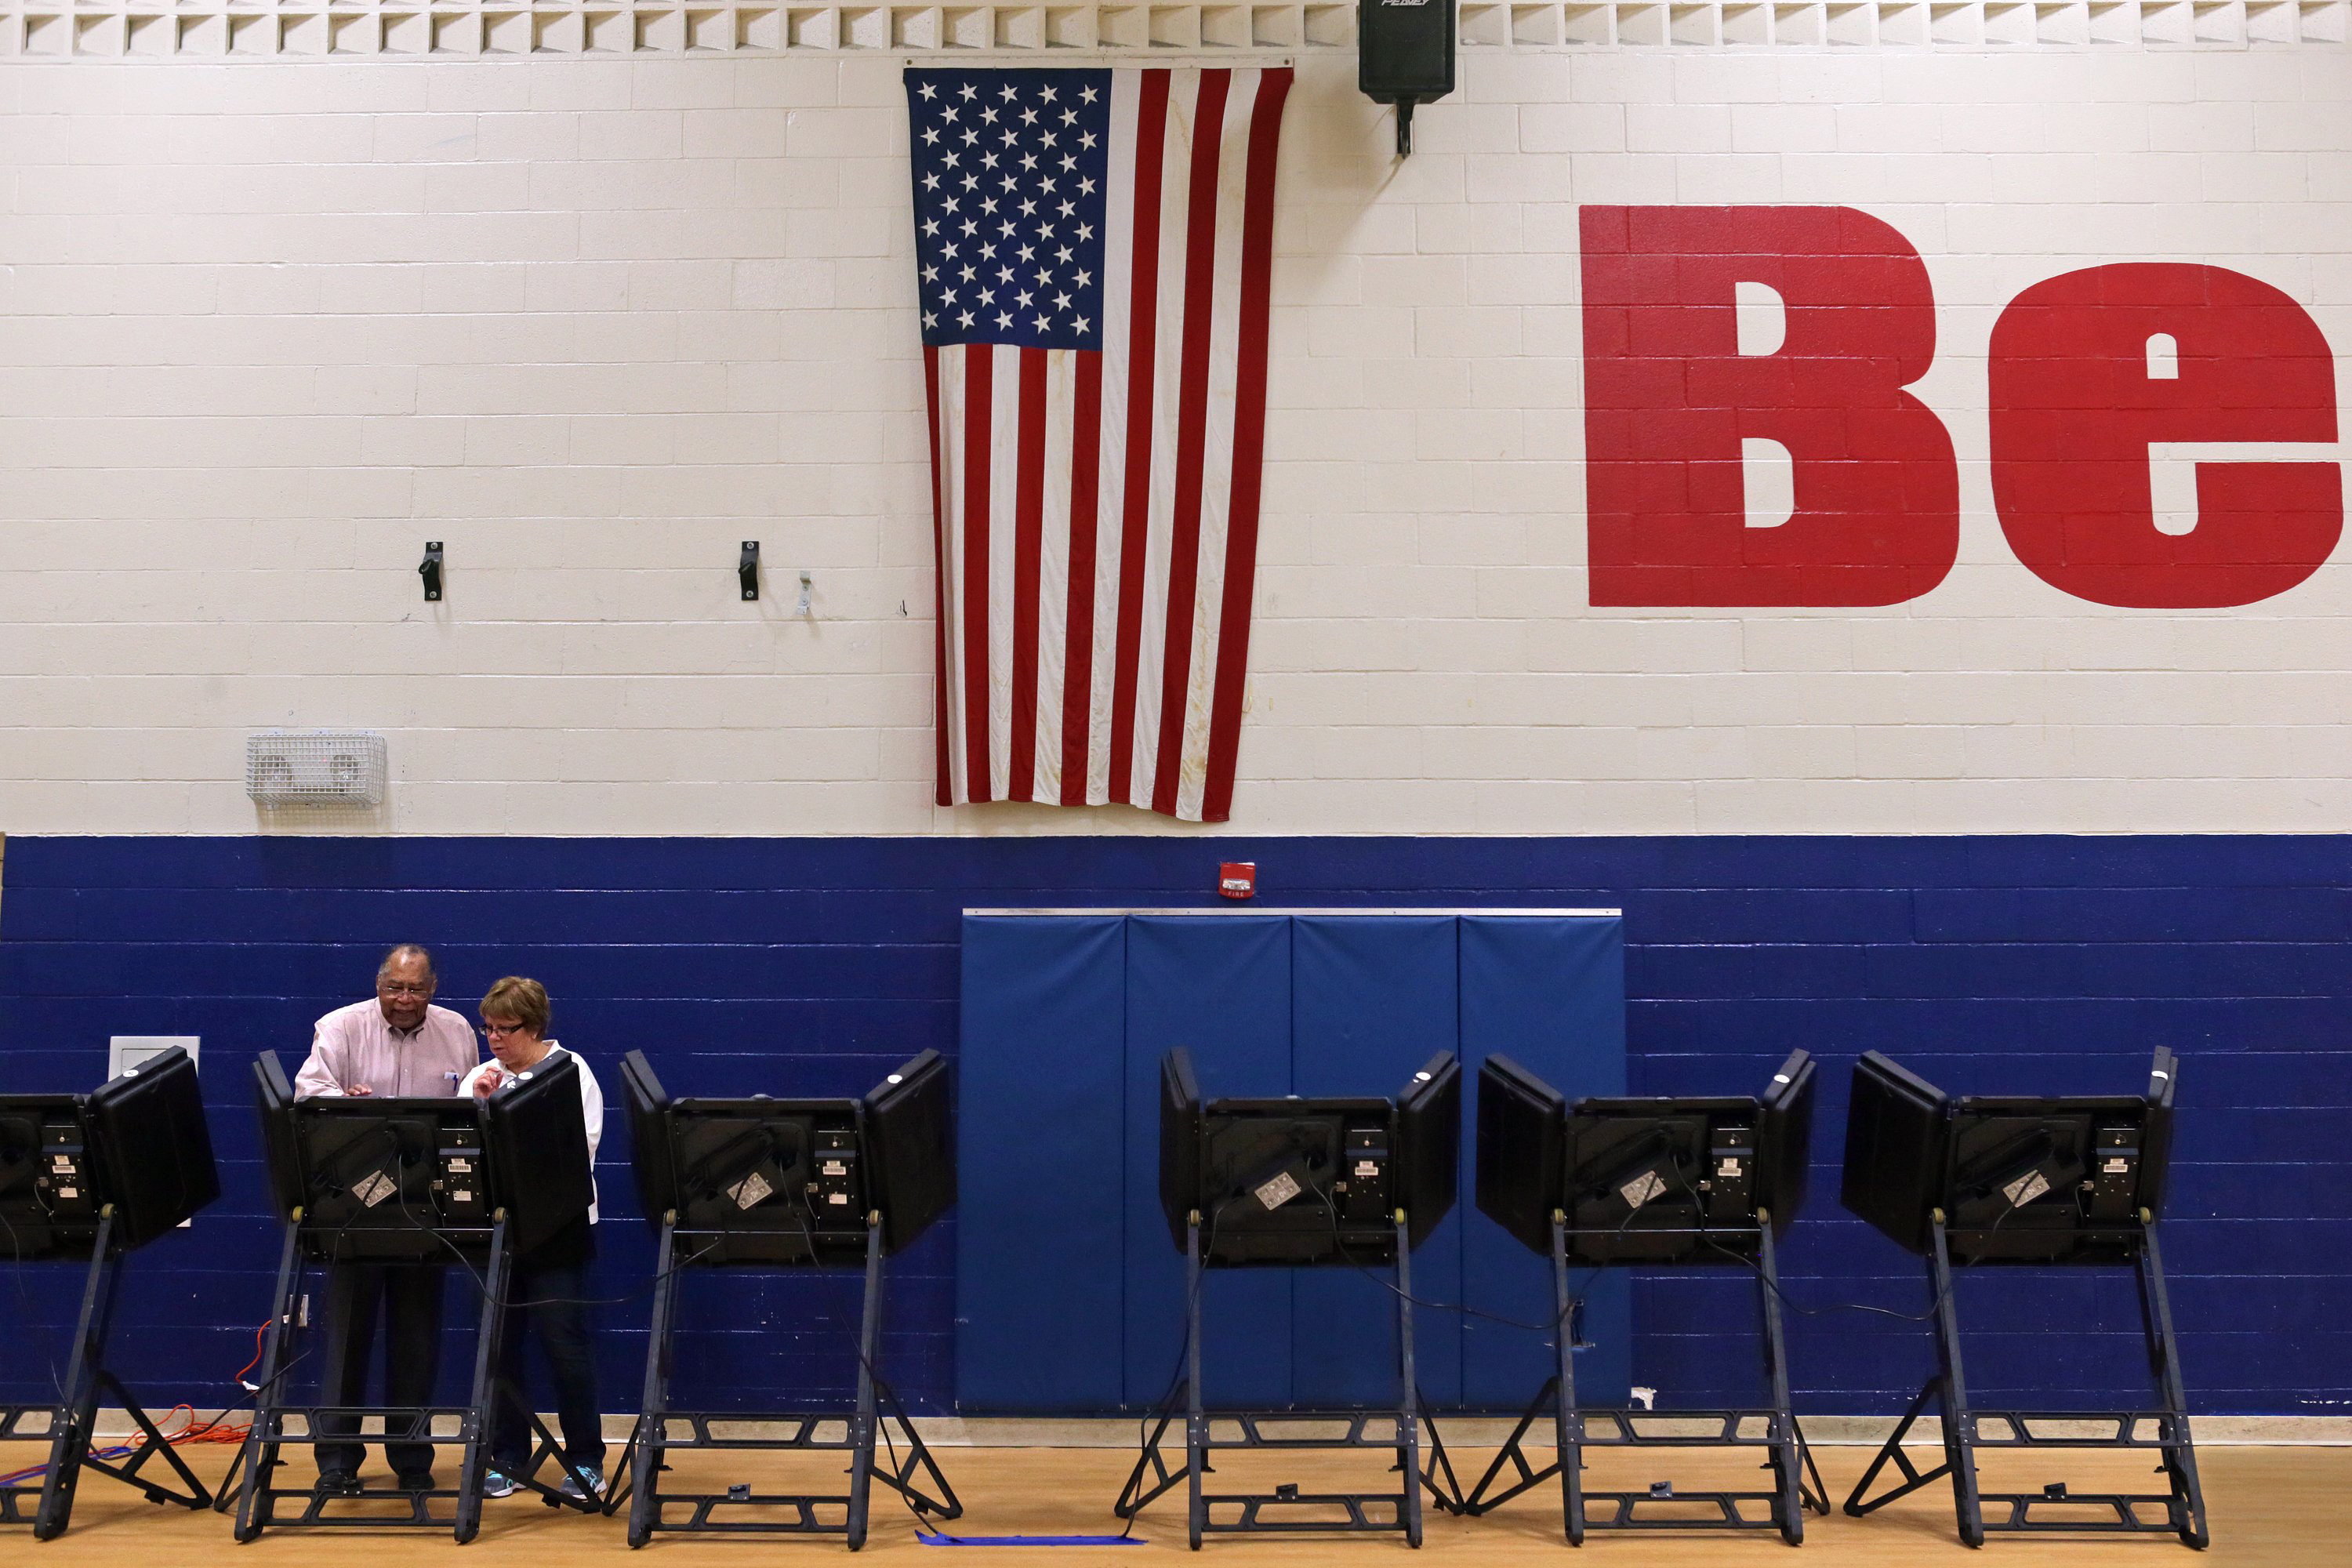 An assistant supervisor of voting at Bernard School in Mehlville, right, demonstrates how to use the electronic voting machine for voting in the Republican and Democratic primaries on Tuesday, March 15, 2016, at Bernard School in Mehlville, Mo.